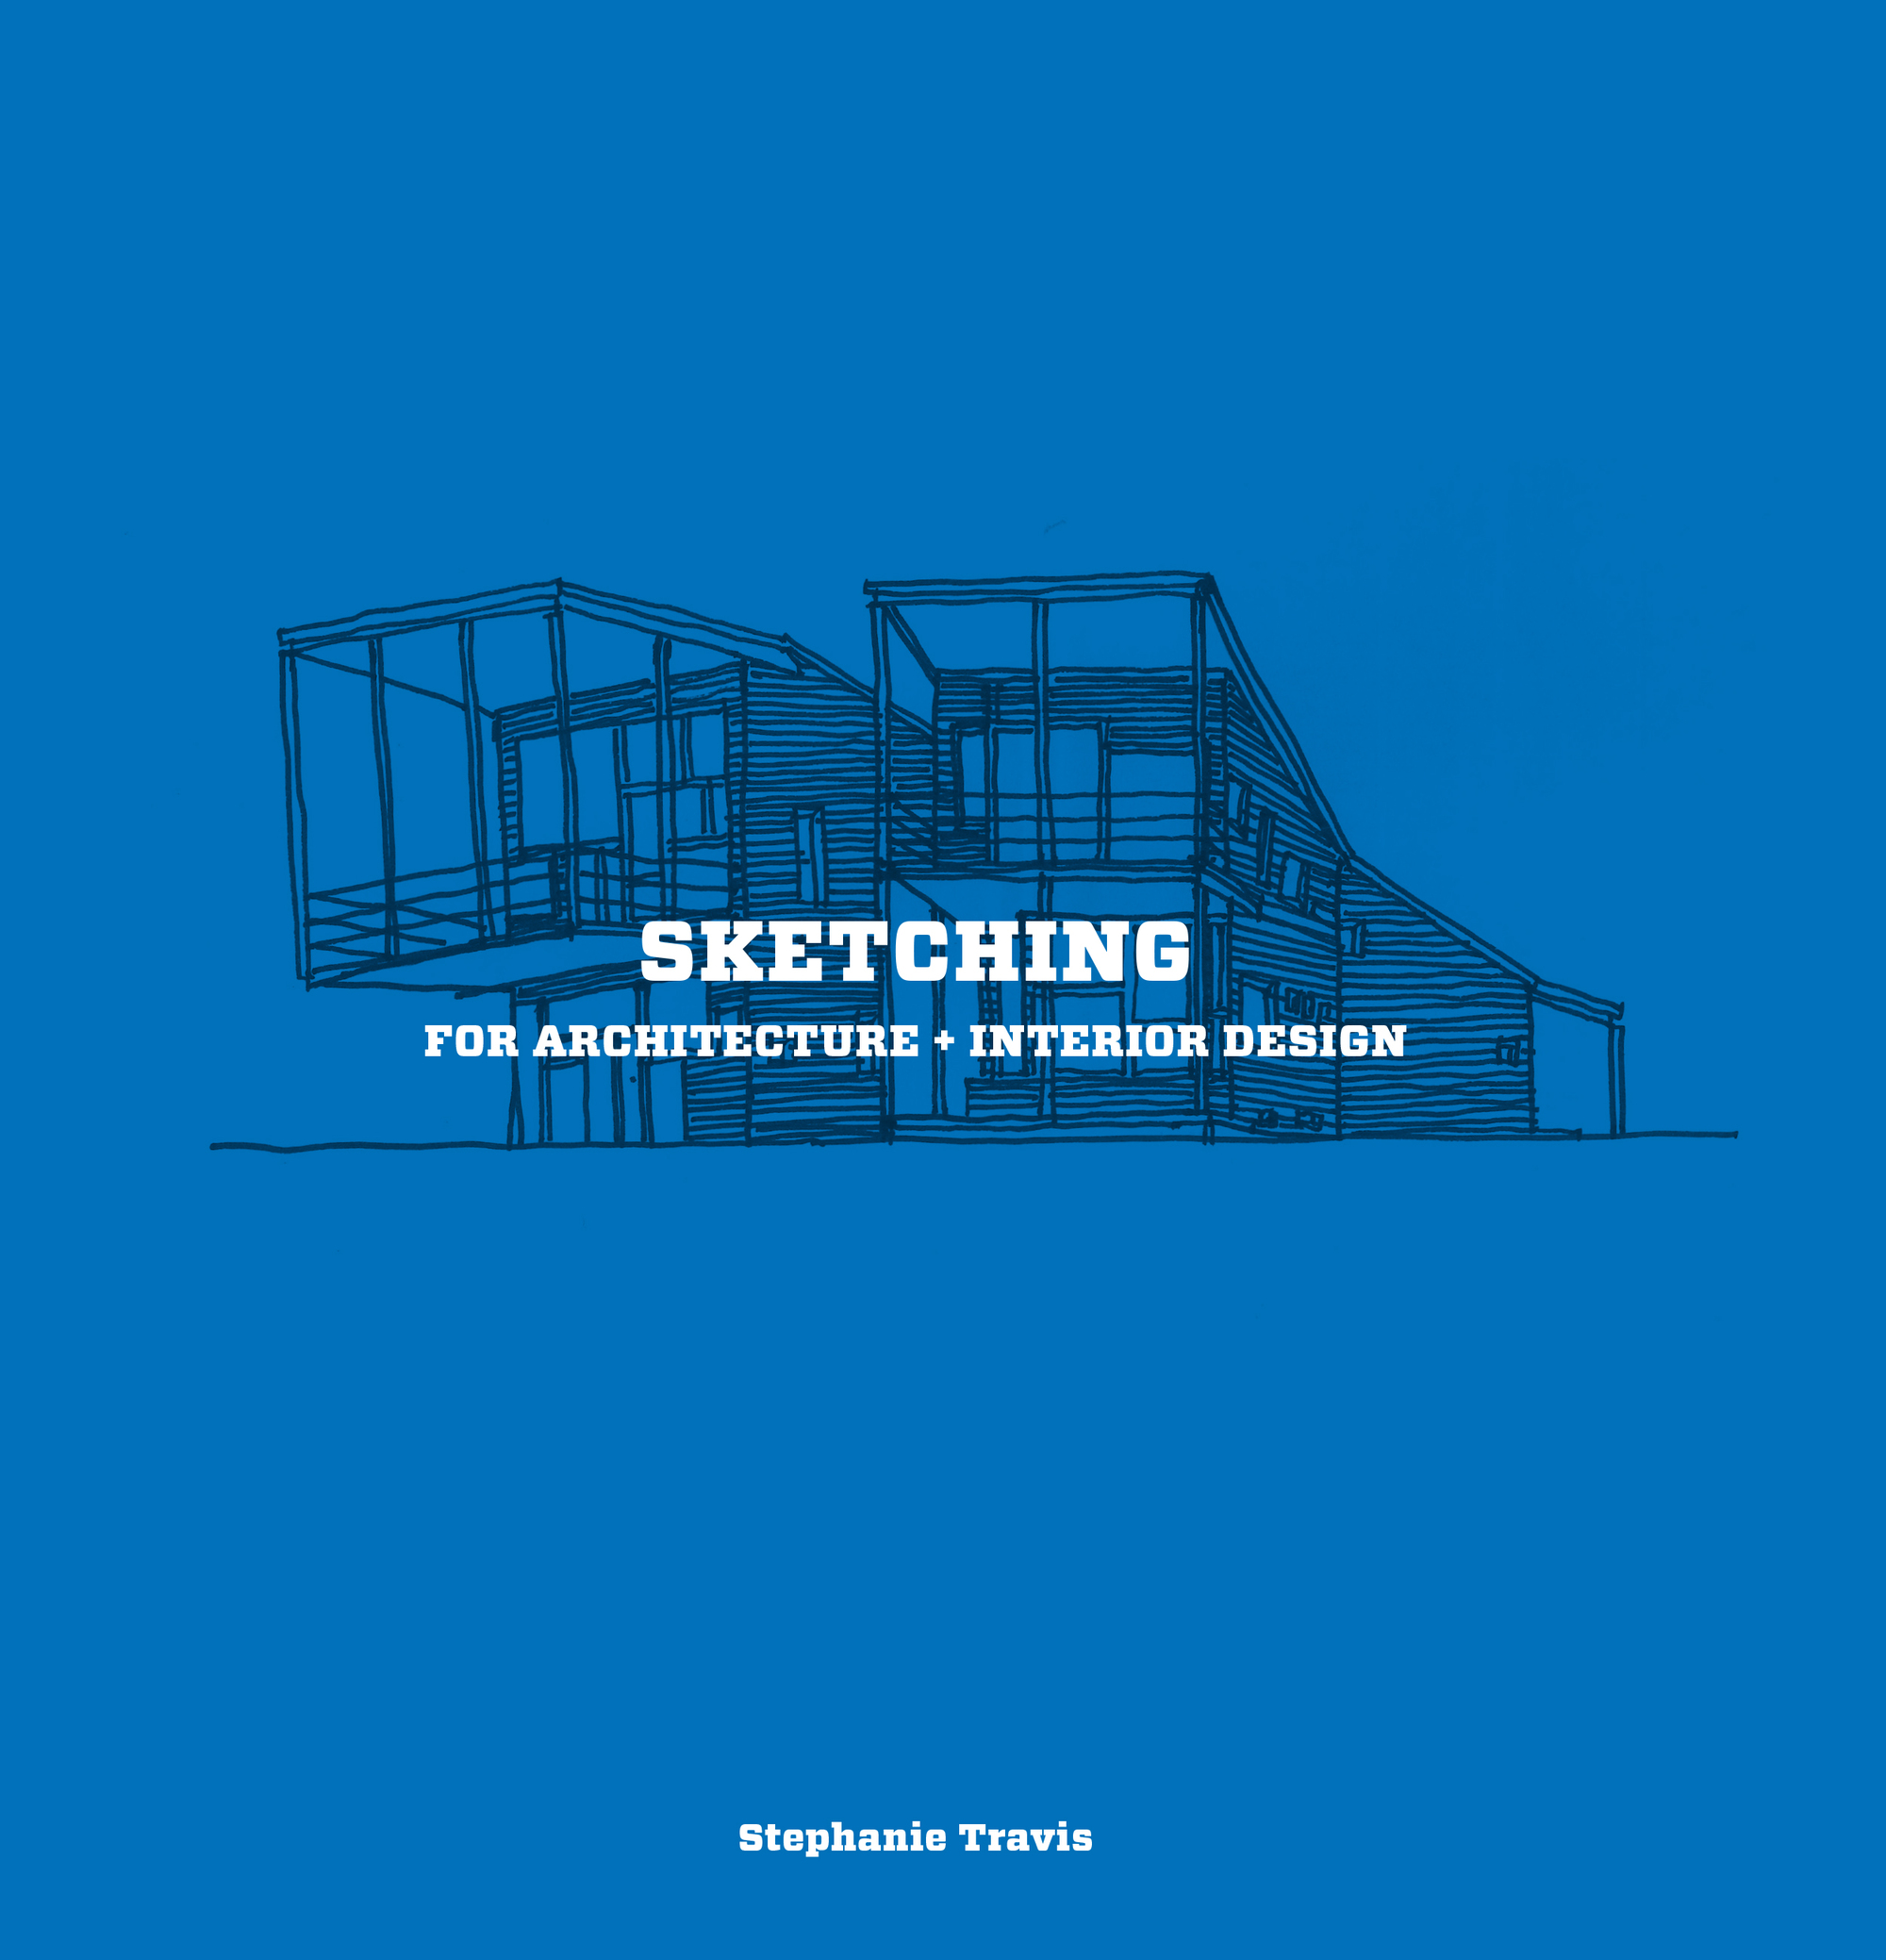 Sketching for Architecture & Interior Design | ArchDaily